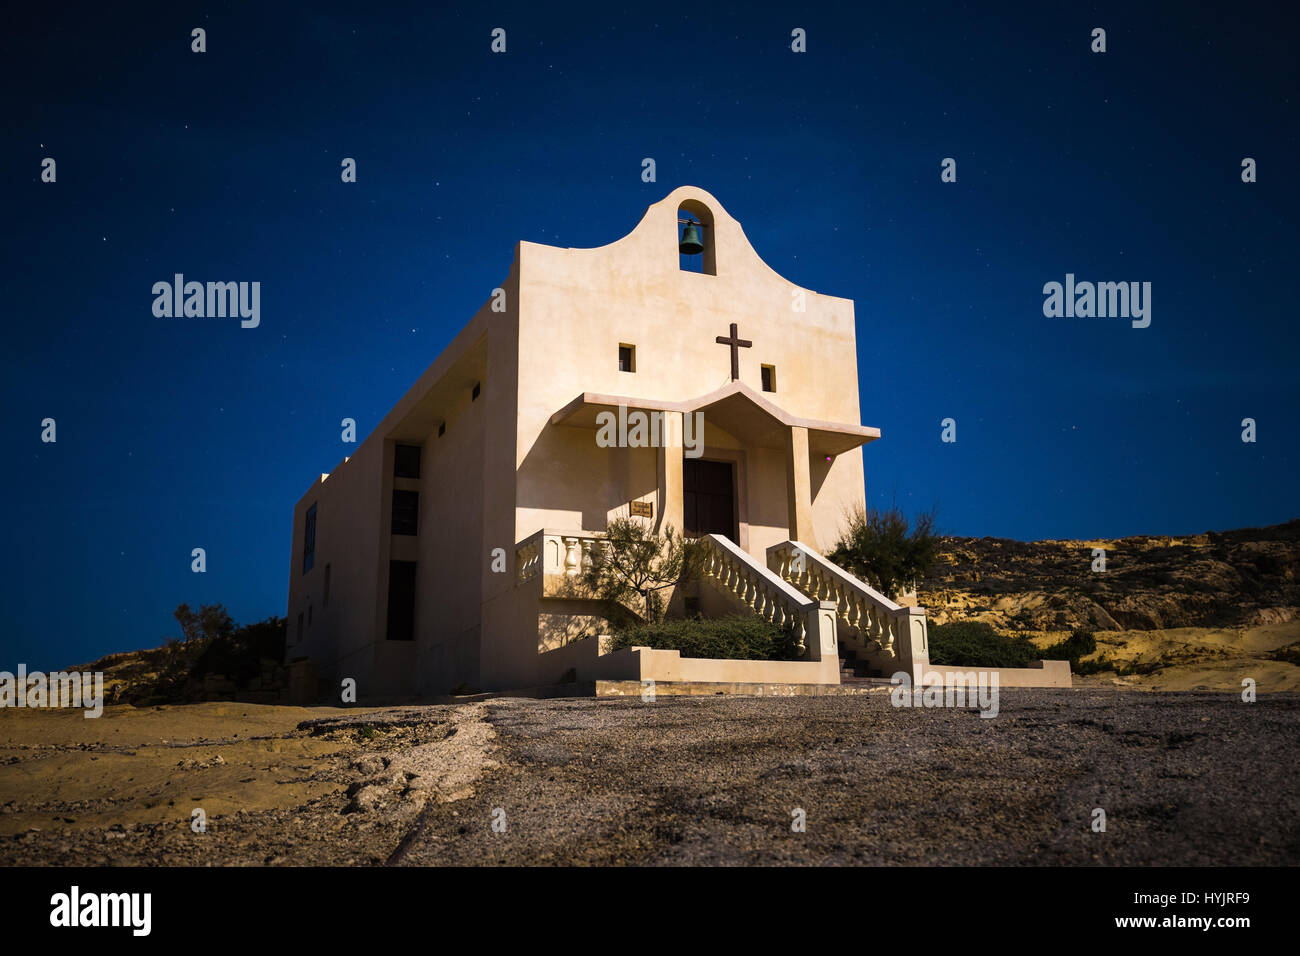 Gozo, Malta - The Saint Anne or Sant' Anna Chapel at Dwejra bay by night on the island of Gozo at full moon - Stock Image